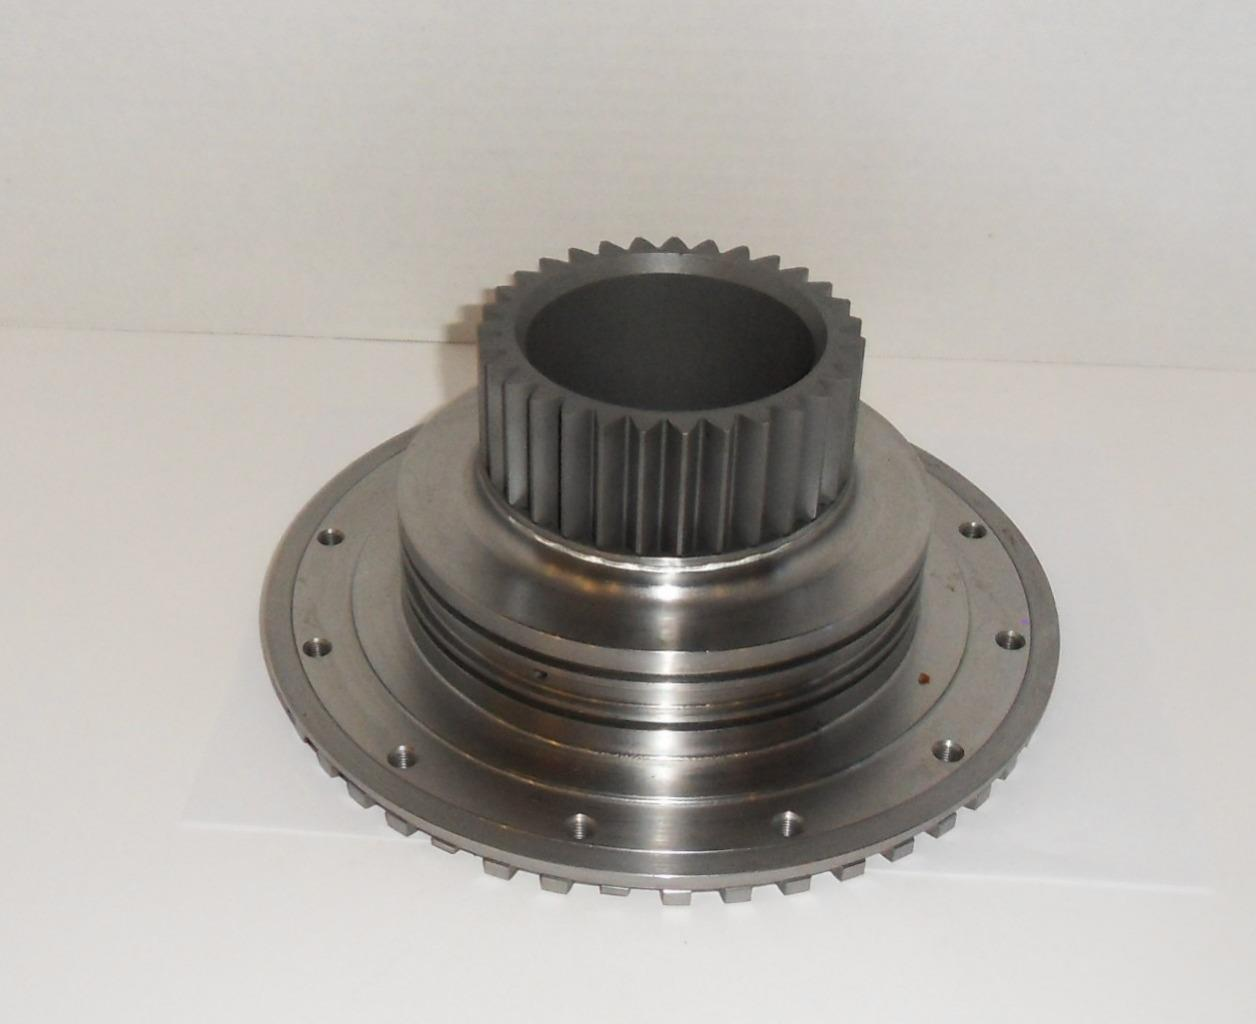 Primary image for Military Surplus 8351584 Clutch Gear & Plate Assy 2520-00-735-9079